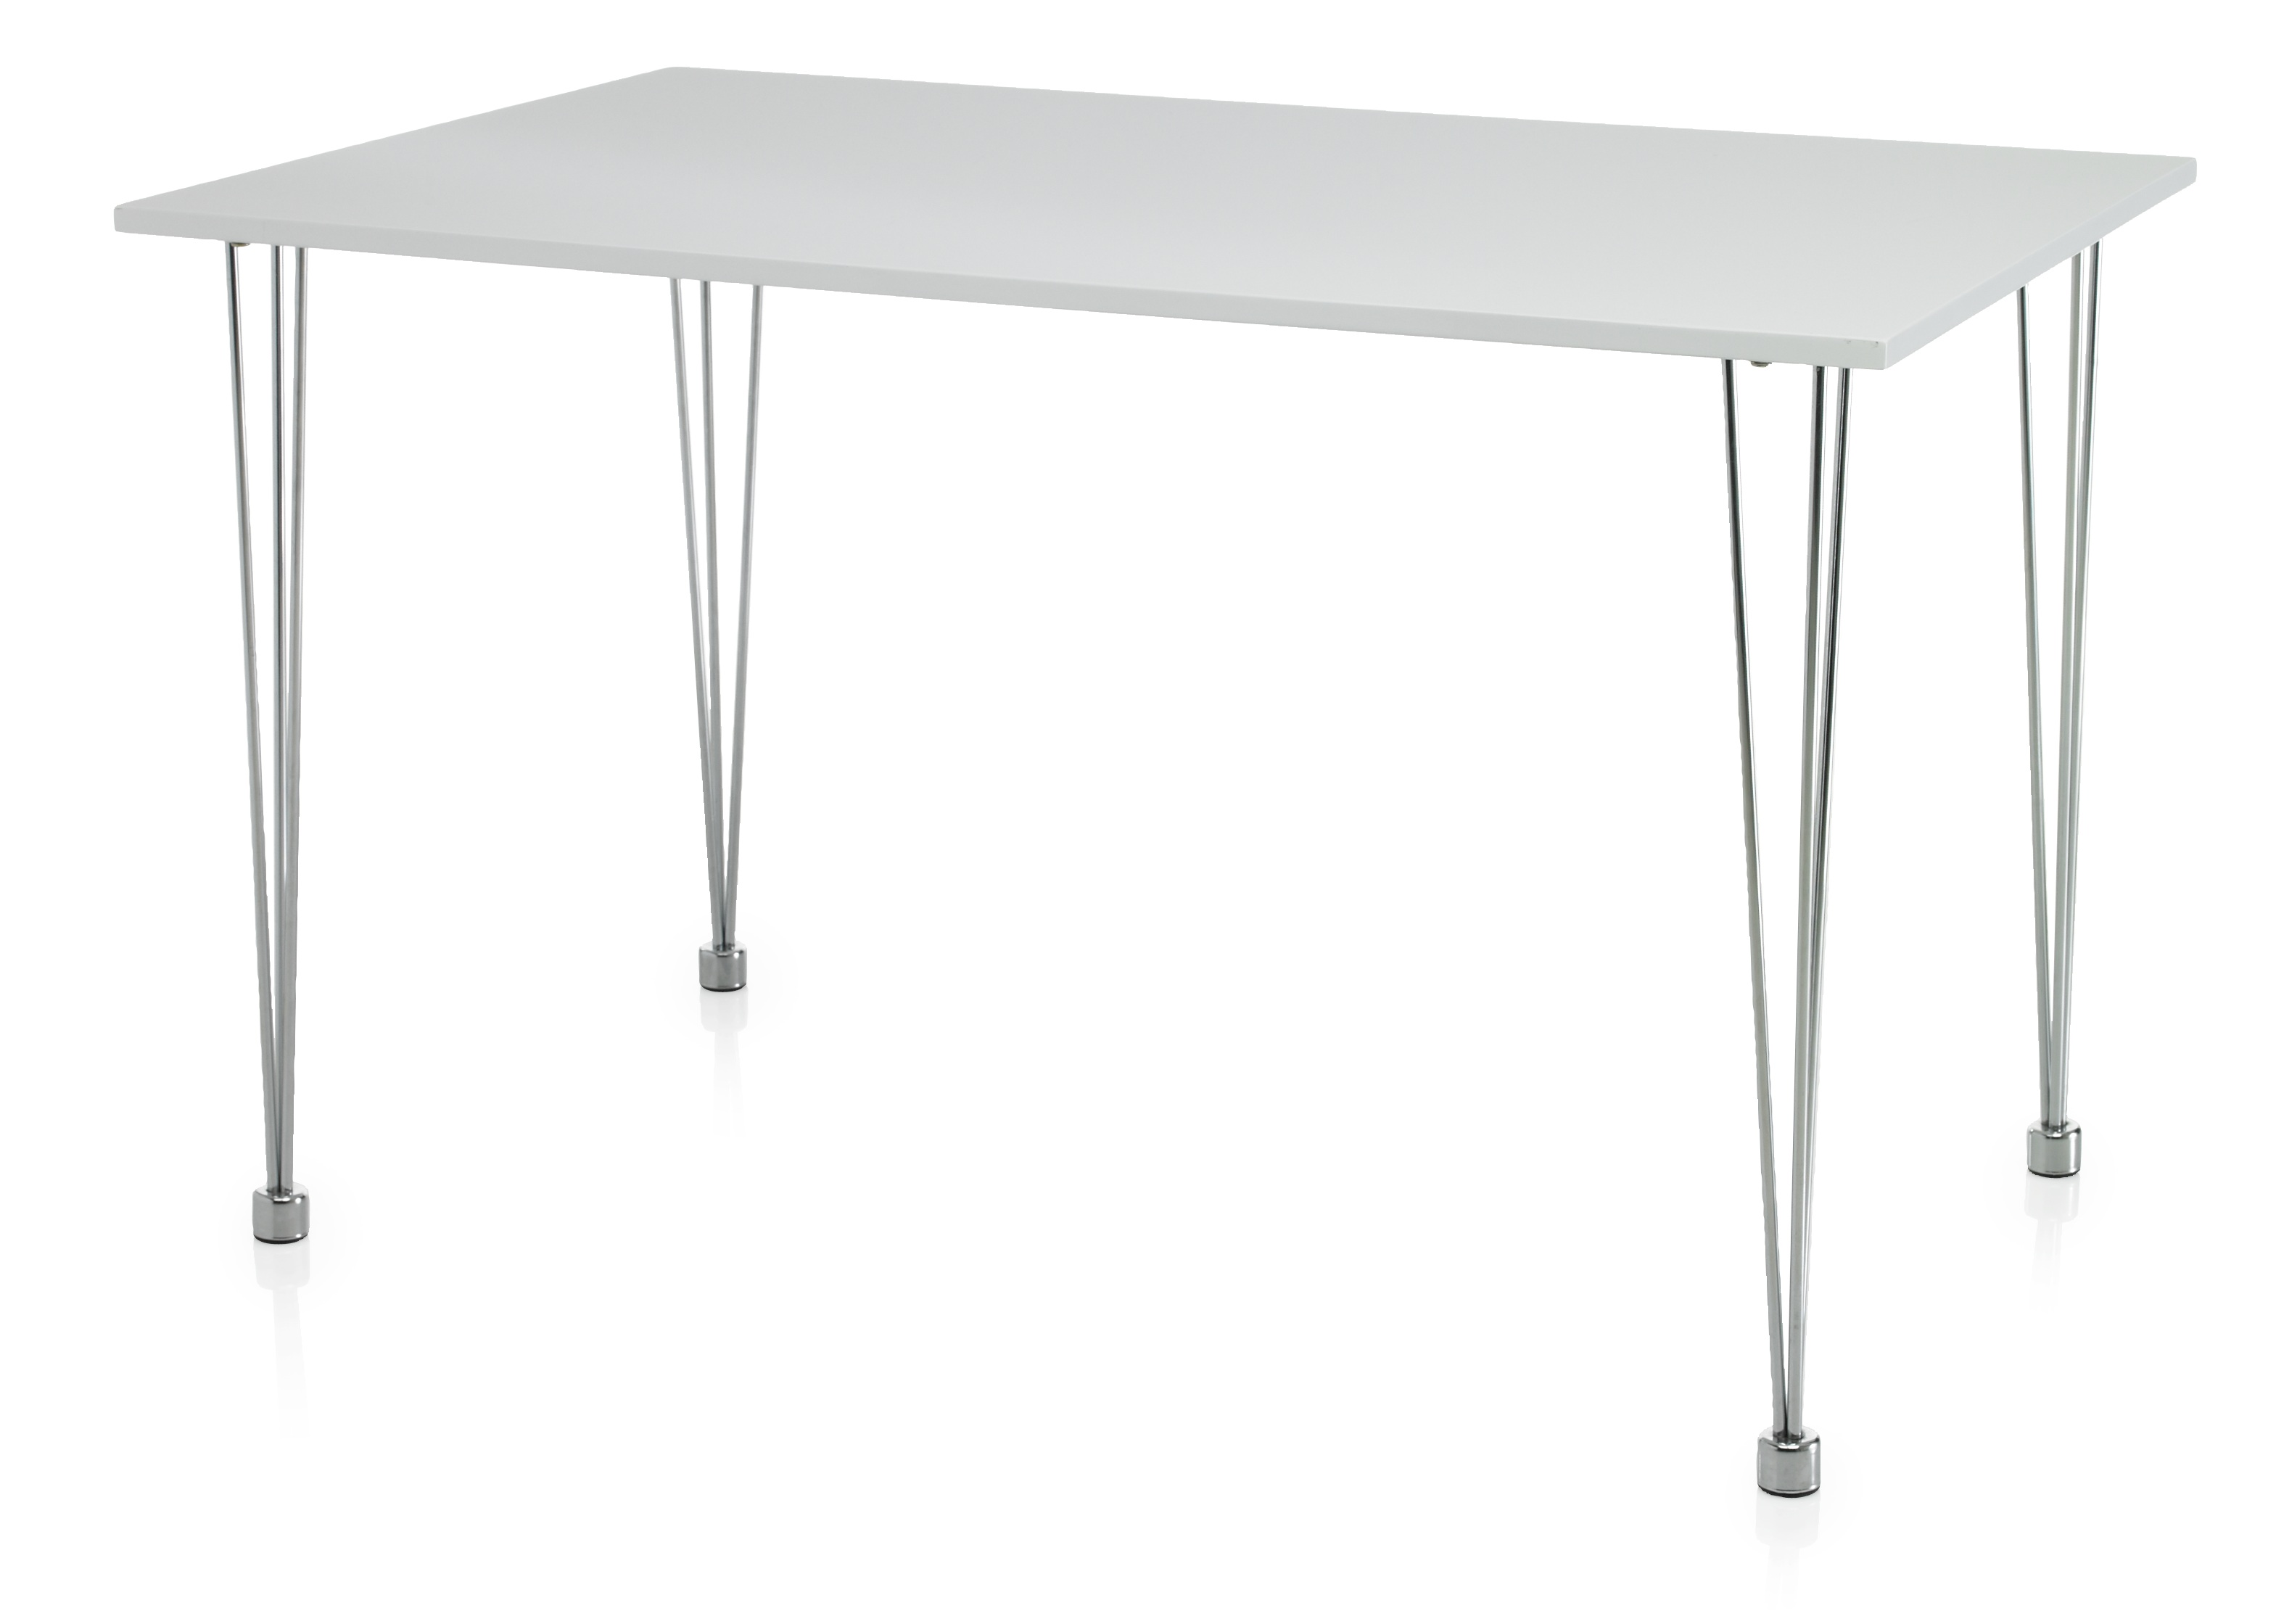 Hi gloss bistro dining table rectangular white 6 seater kitchen furniture ebay - Rectangular dining table for 6 ...